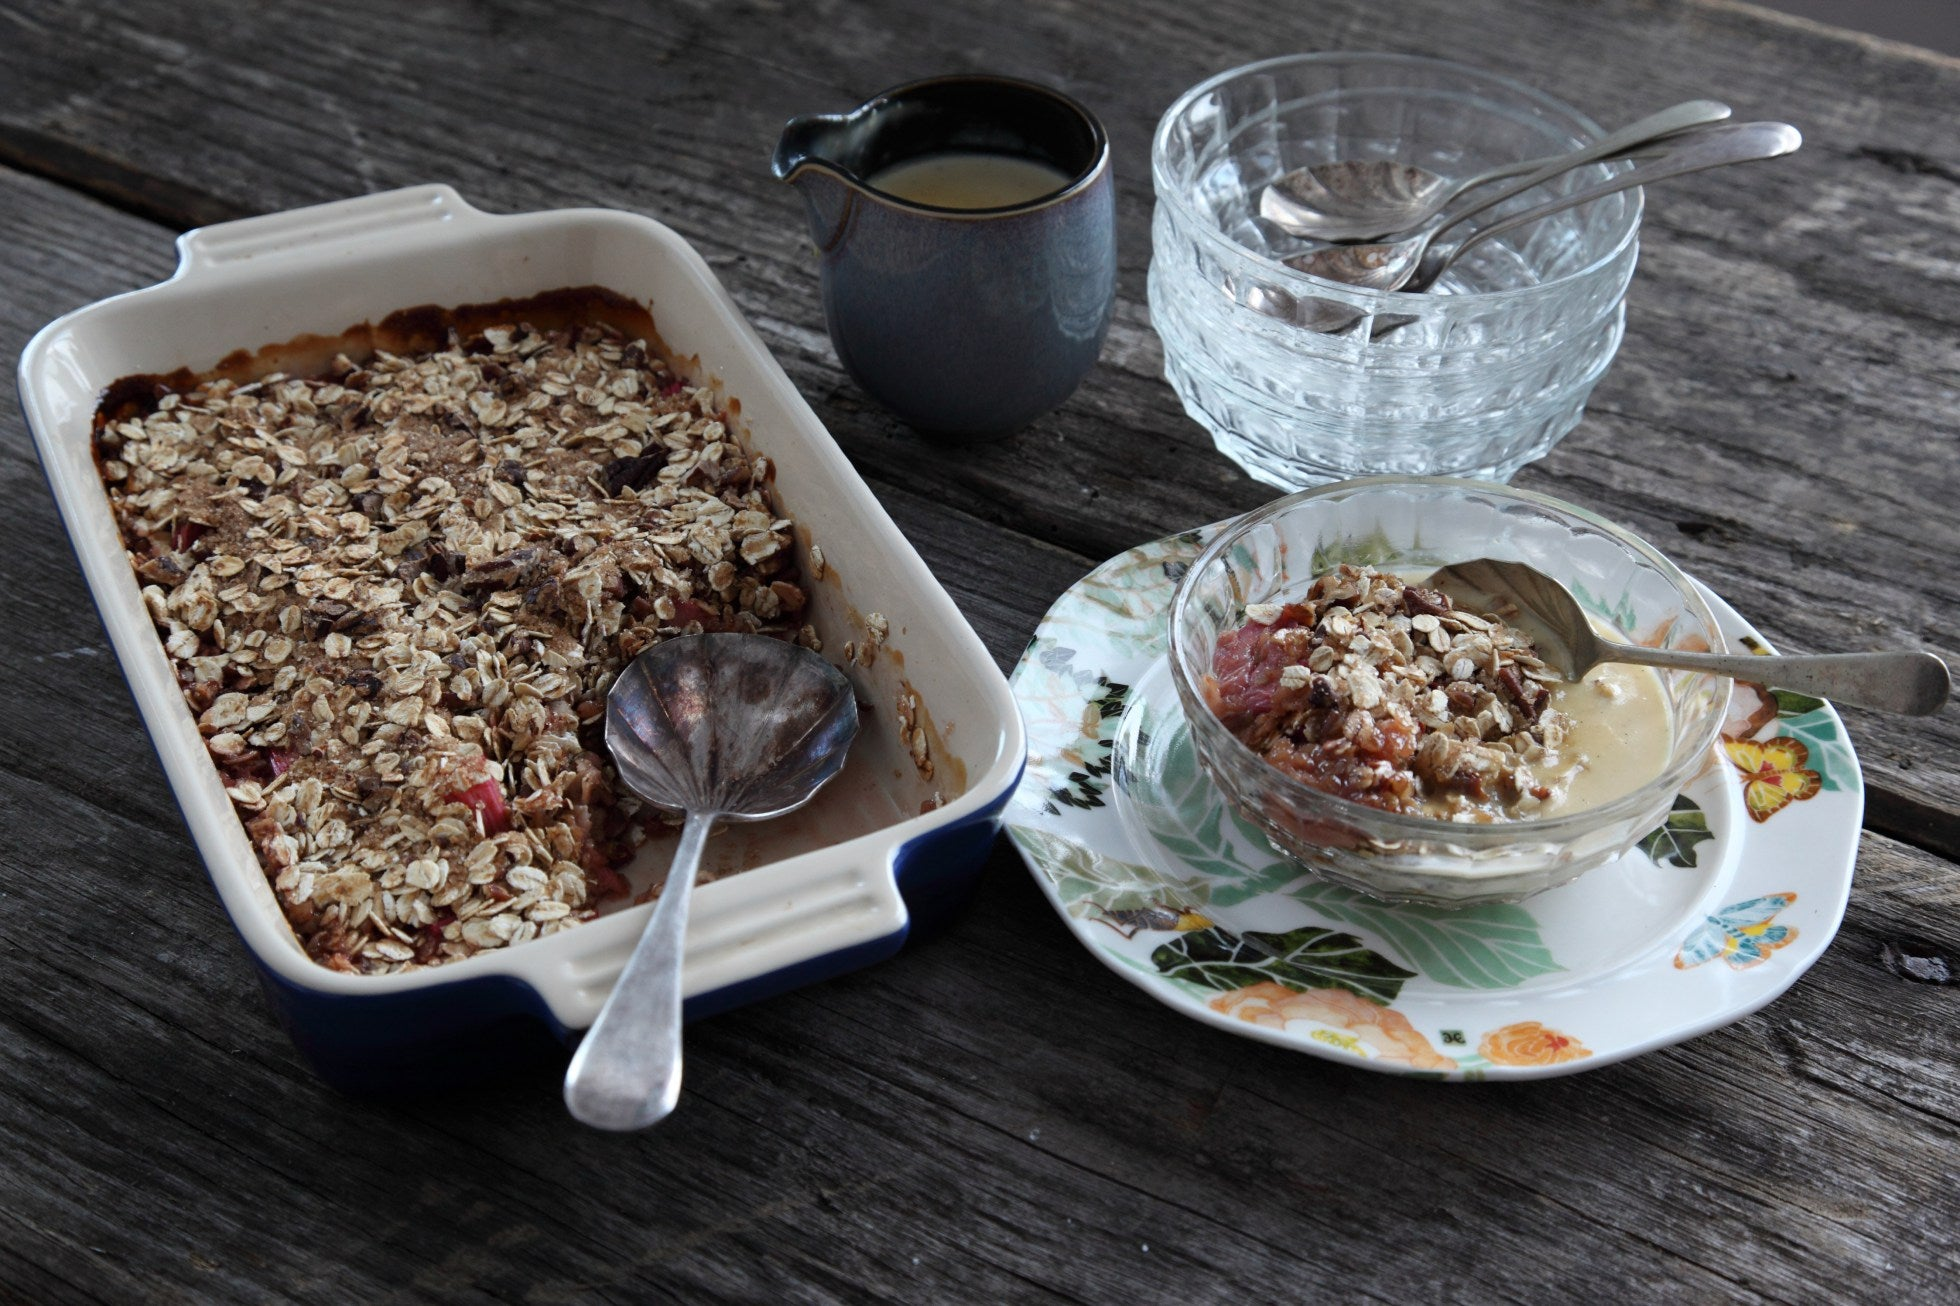 It is always nice to get back to the classics like rhubarb crumble.